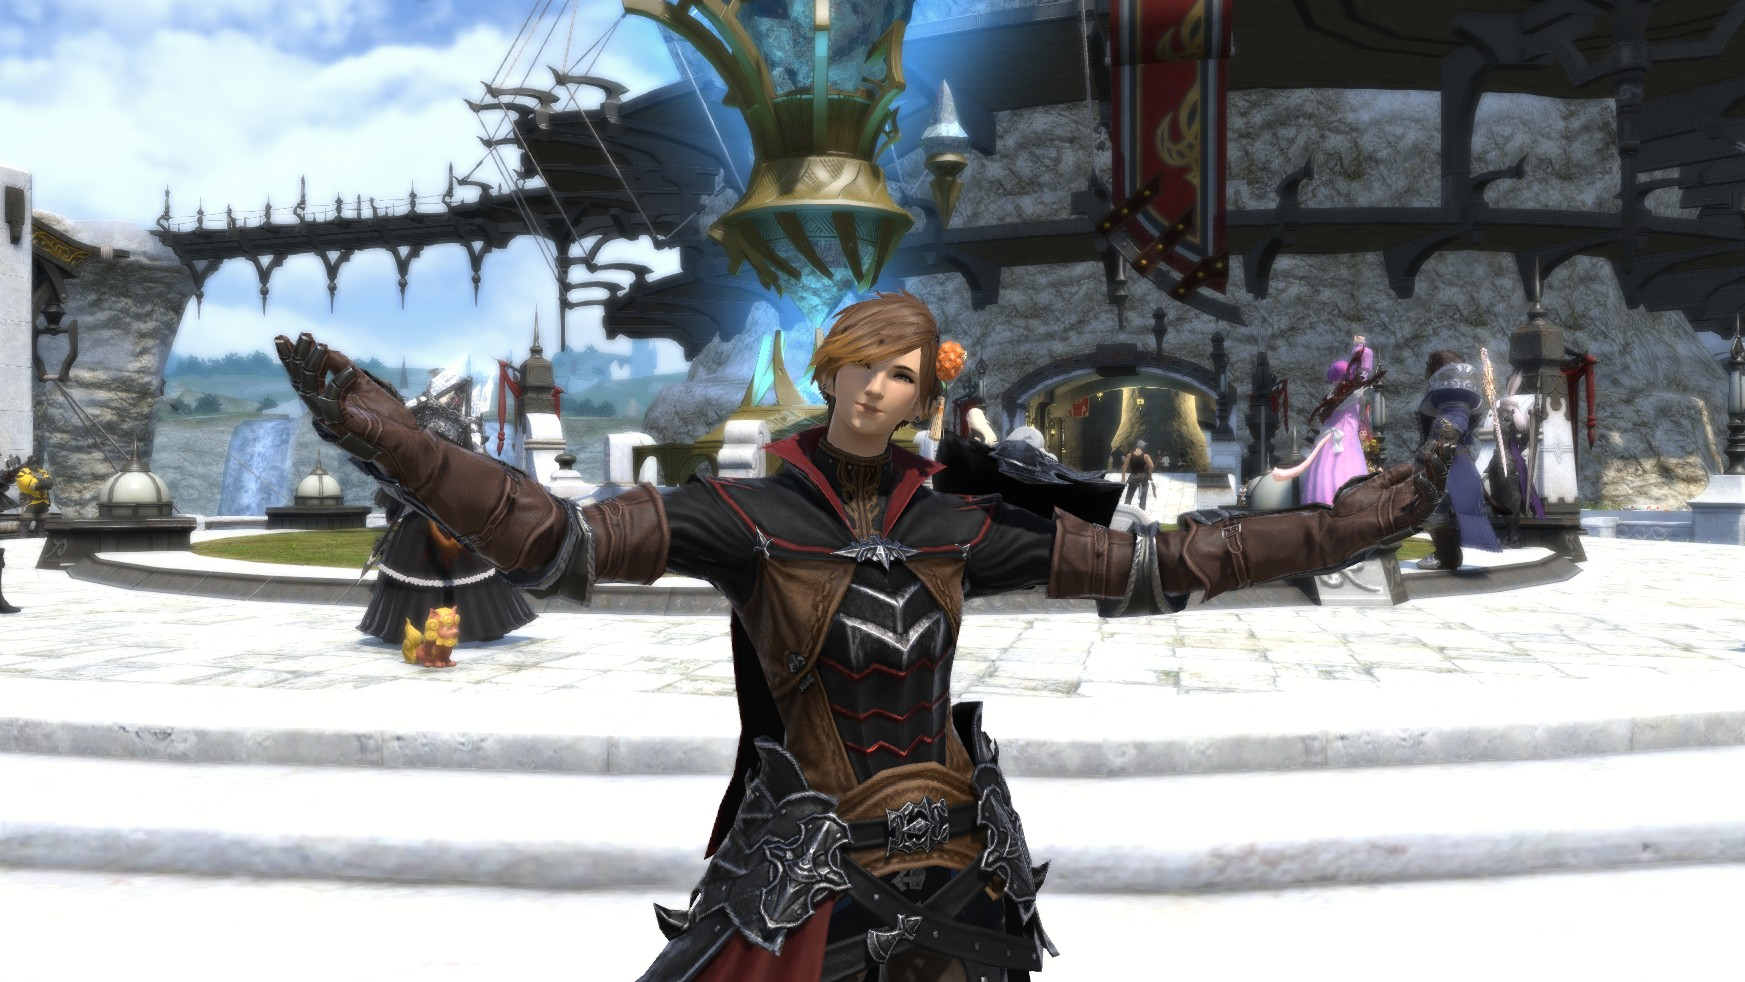 So, you want to get back into Final Fantasy XIV?